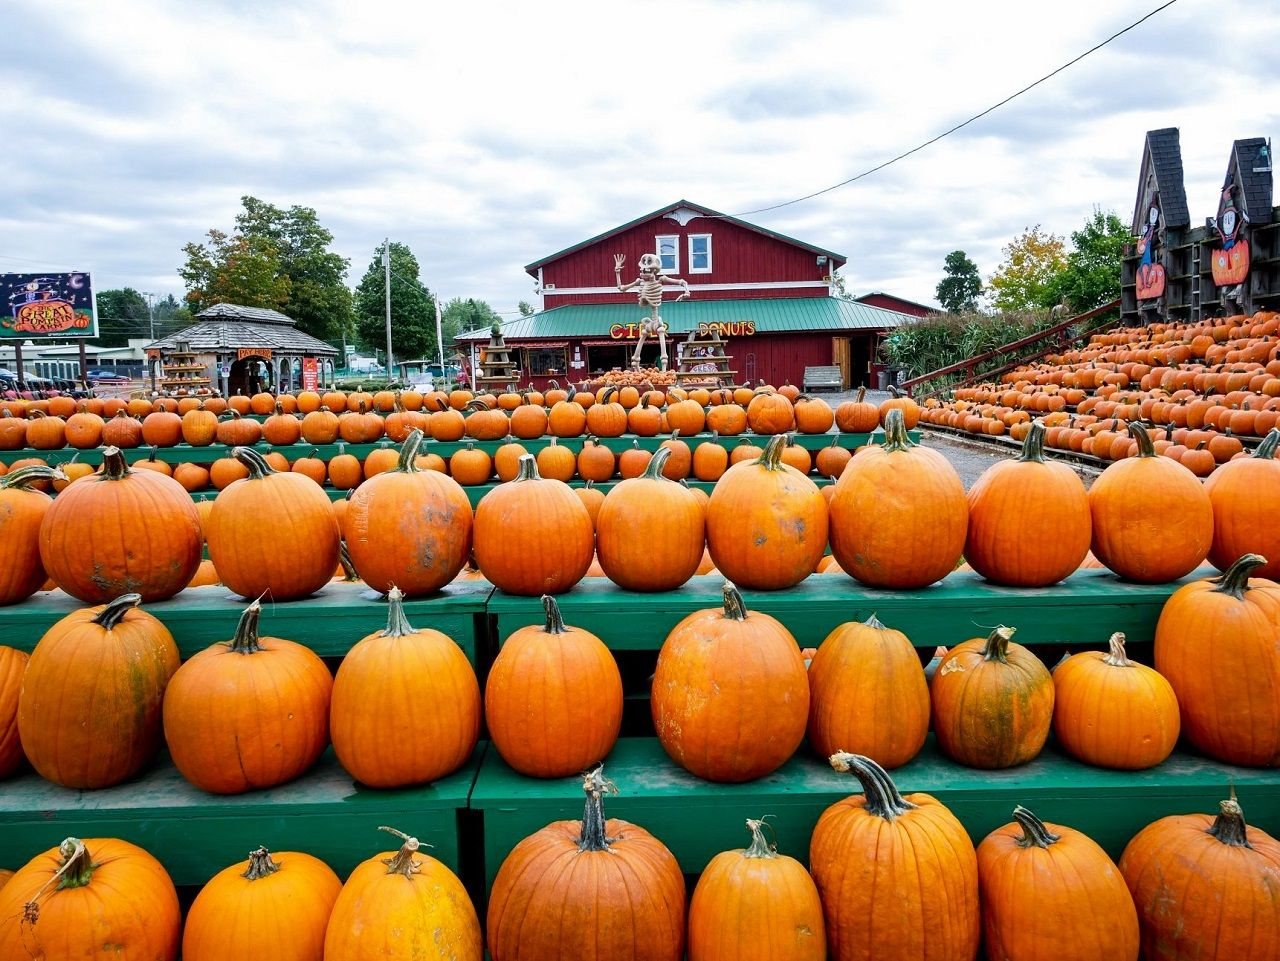 Pumpkins lined up at the Great Pumpkin Farm in New York